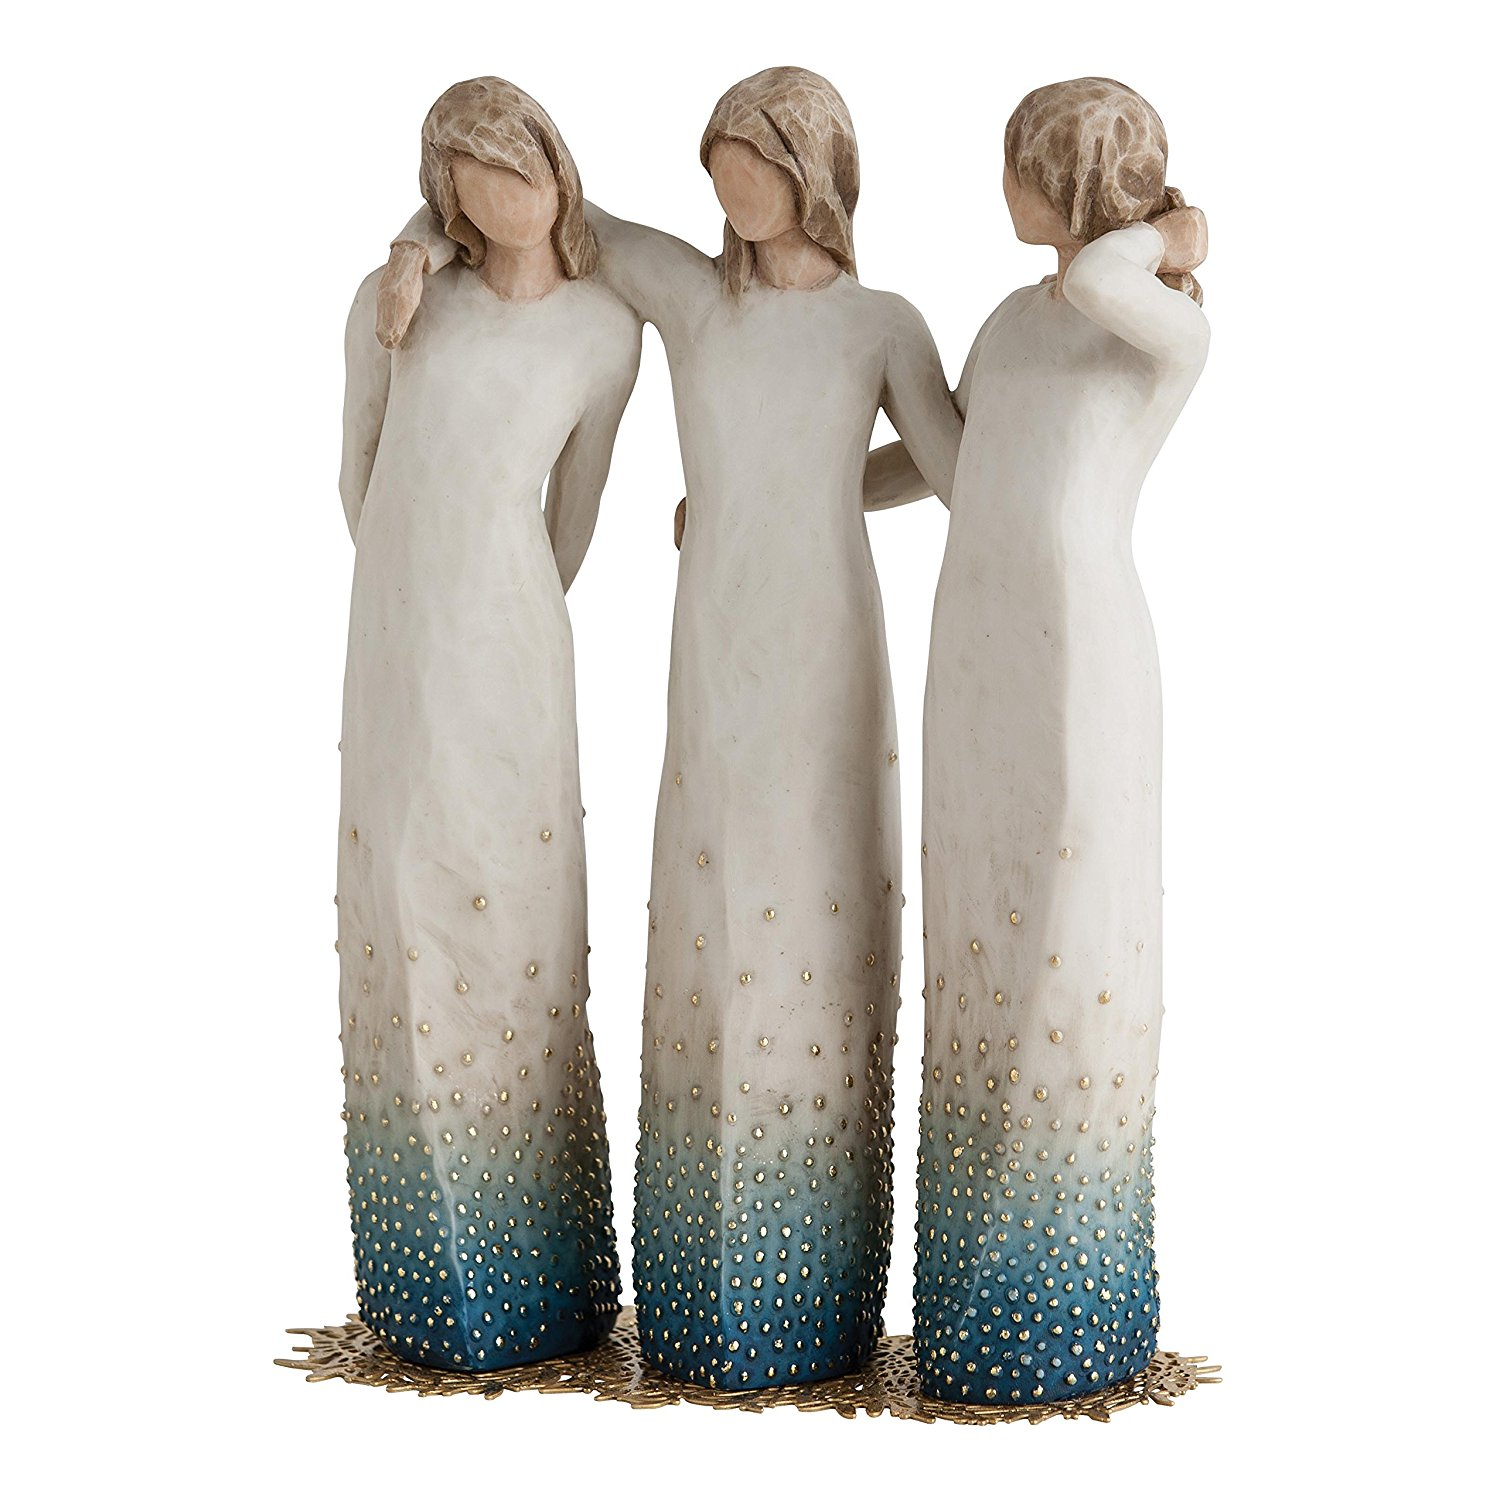 Willow Tree By My Side - Susan Lordi Figurine - 3 Sisters